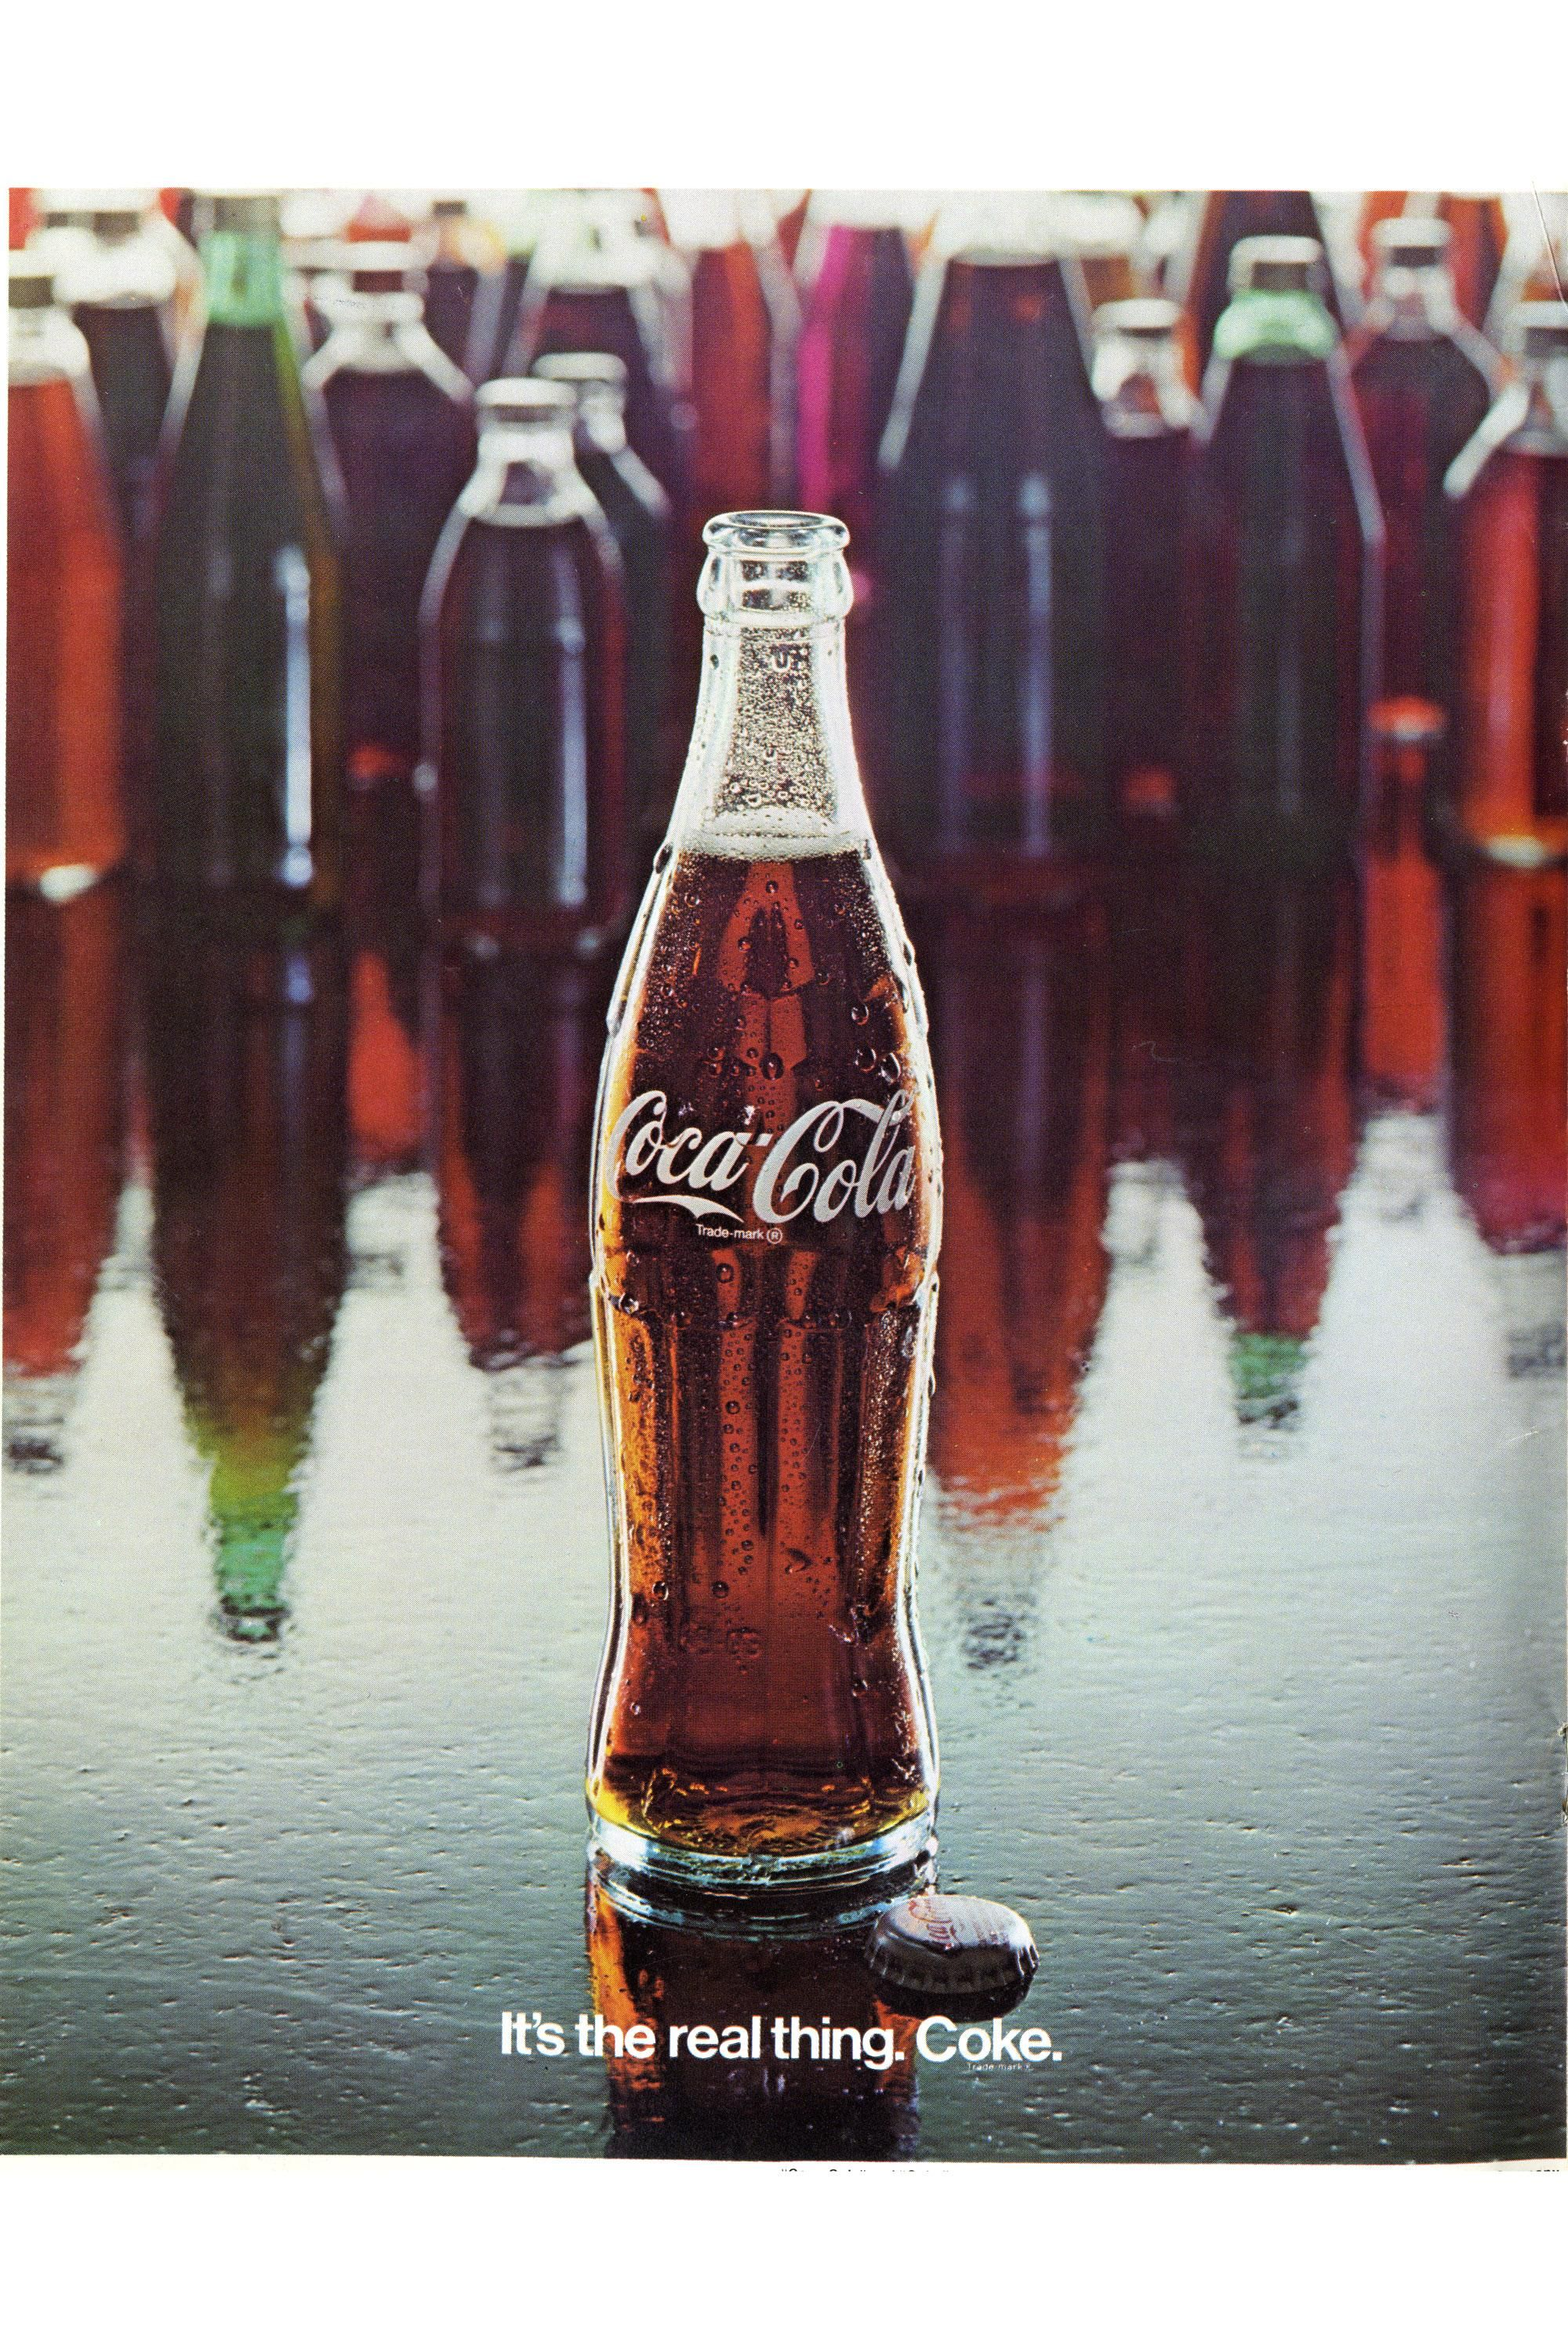 COCA COLA SLOGAN GLASS Drinking Coke Trademark It Is Always Real Thing L ike New